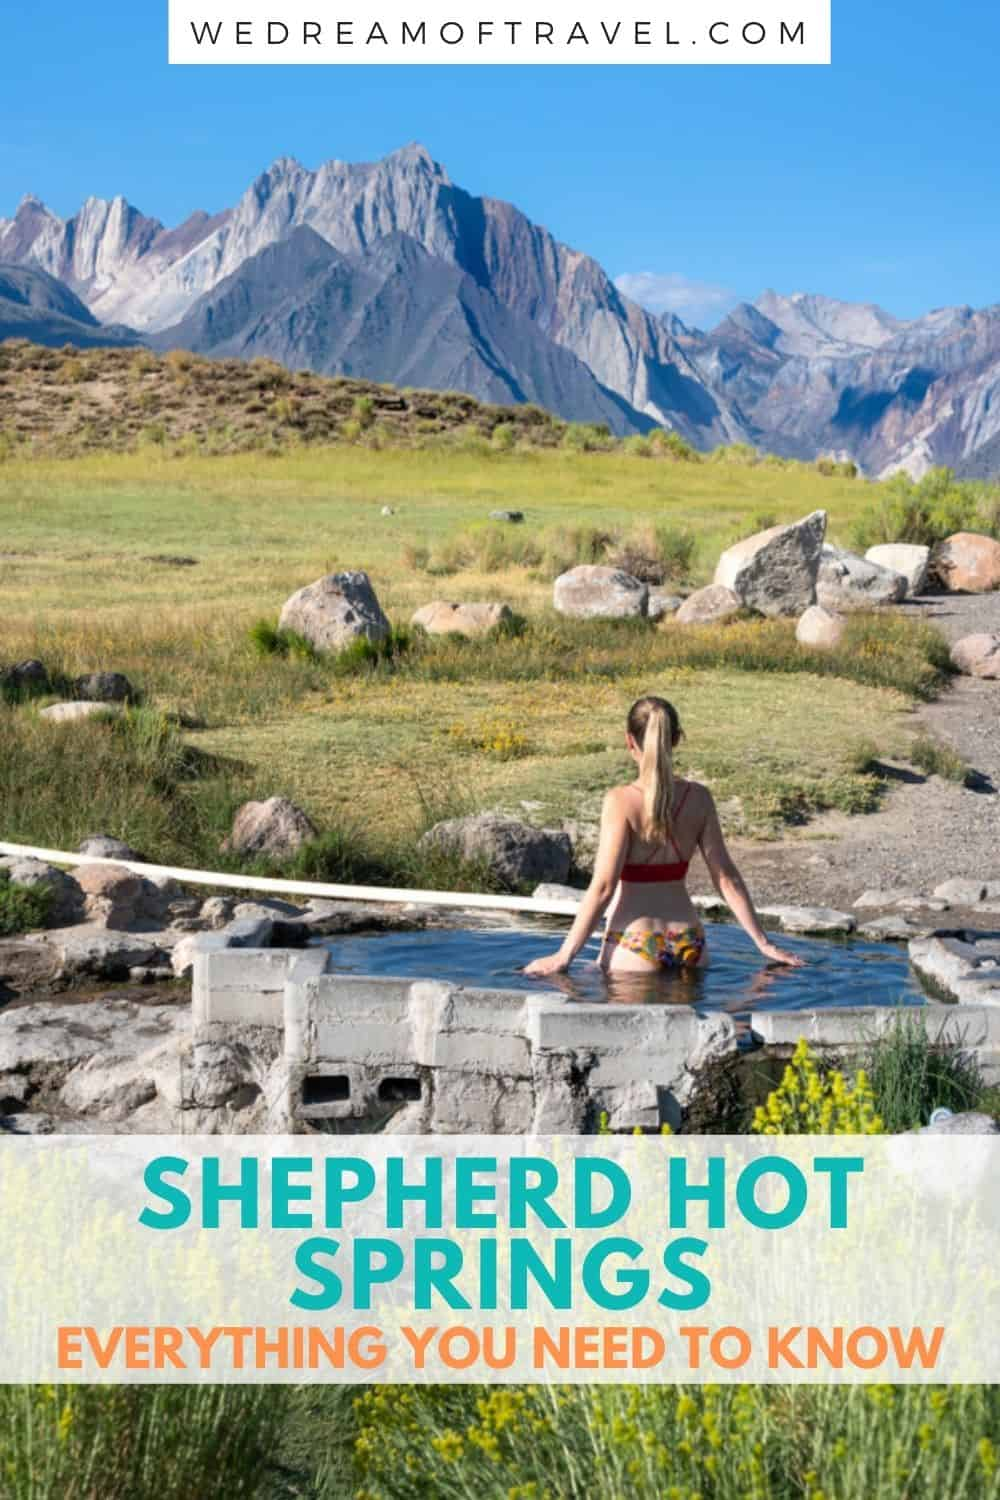 Shepherd Hot Springs is one of many natural hot springs in Mammoth Lakes.  It boasts spectacular views of the Sierra Mountains over a lush meadow.  Soak in naturally heated mineral water as you take in these postcard worthy views.  Discover everything you need to know about finding Shepherd Hot Springs, including the best time to visit and how to help protect these natural areas.